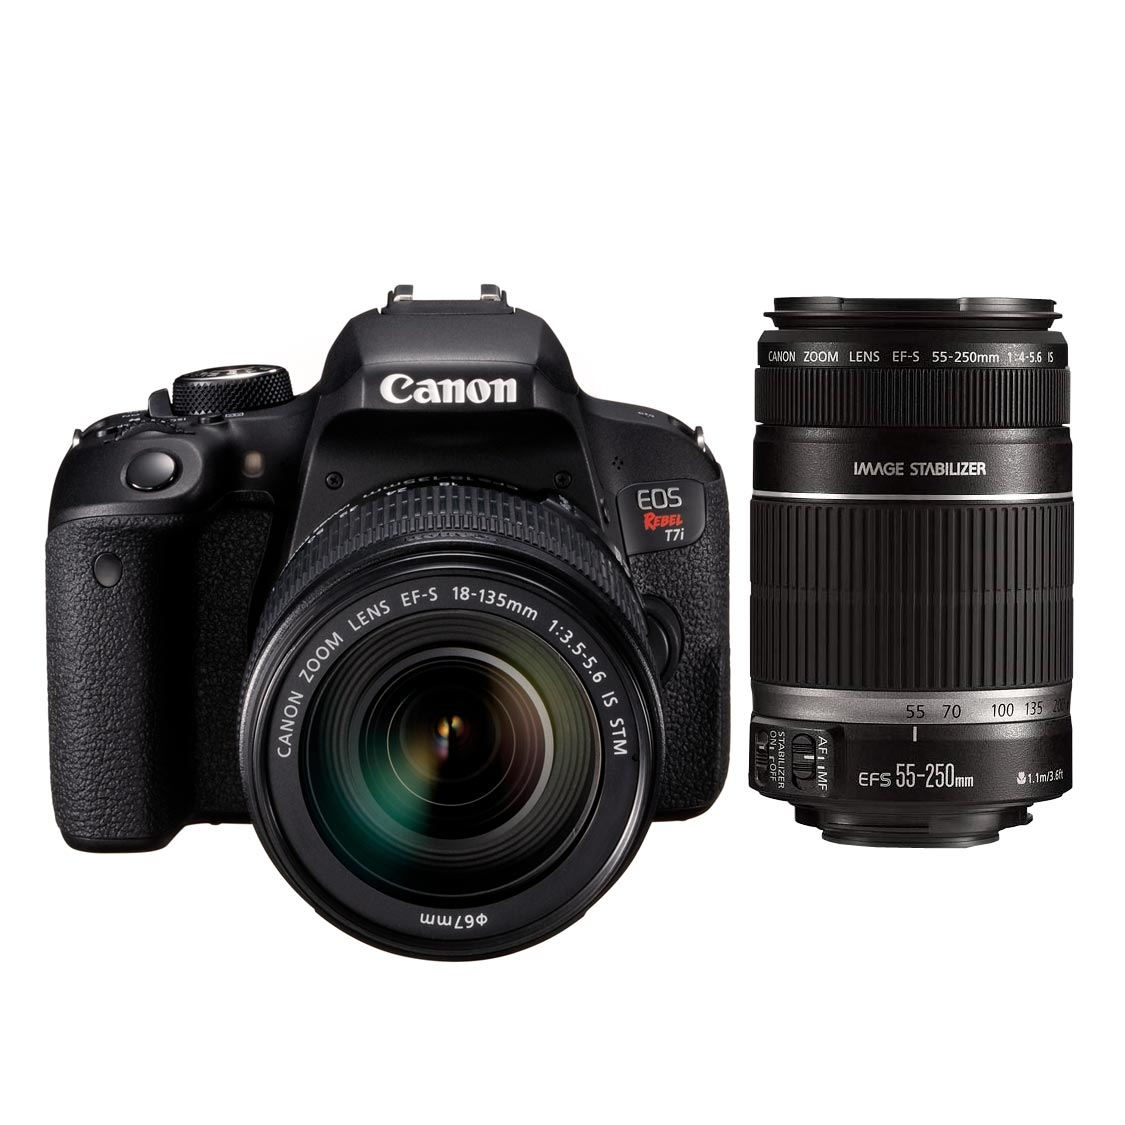 Canon Rebel T7i DSLR with 18-135mm IS STM and 55-250mm IS STM Lenses